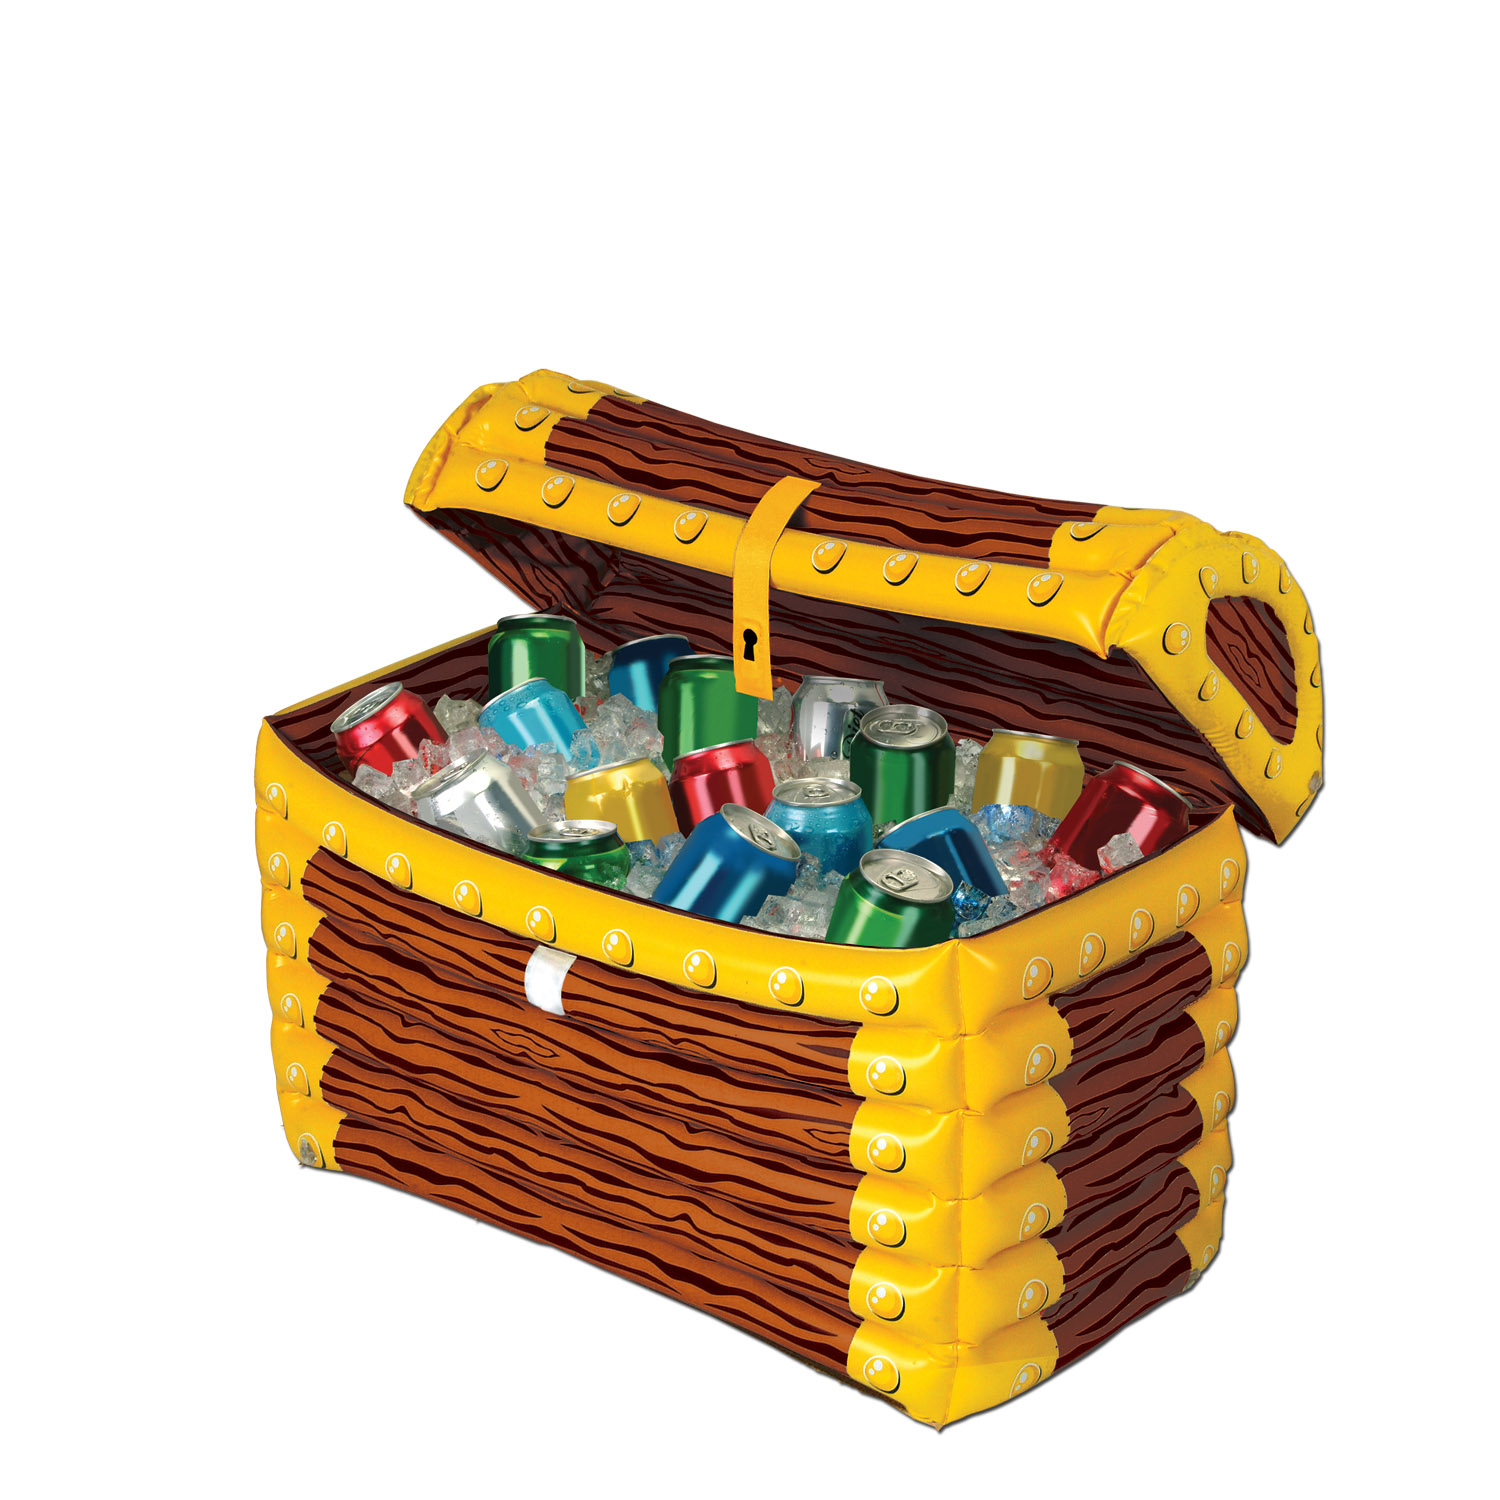 Inflatable Treasure Chest Cooler (Pack of 1) Pirate treasure, treasure chest, cooler, inflatable cooler, pirate cooler